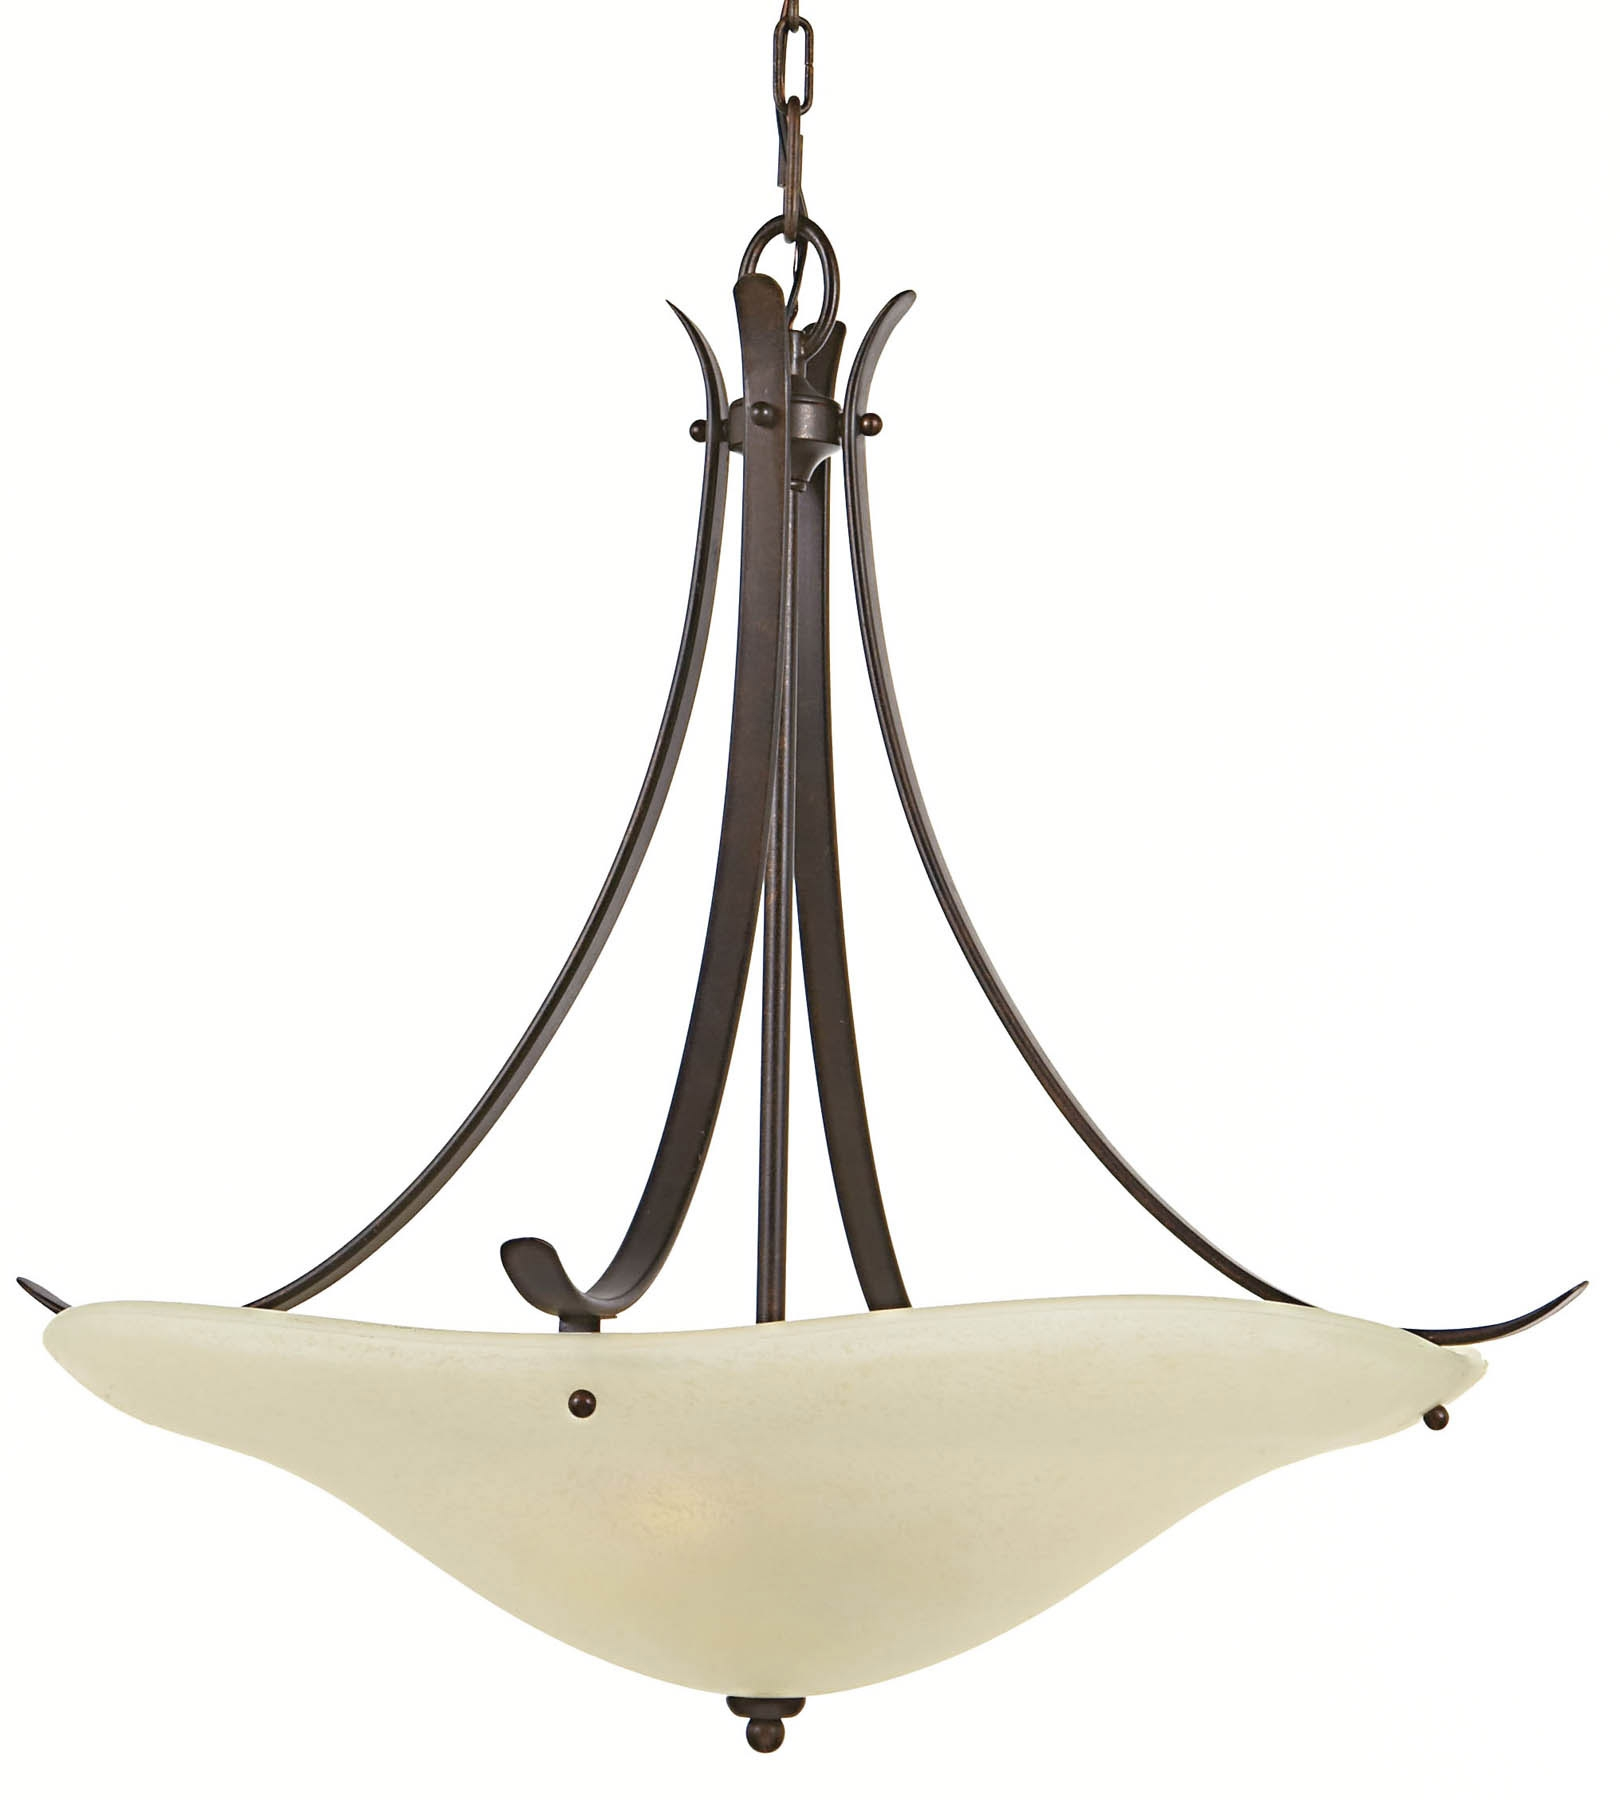 Feiss F20463gbz Morningside Inverted Pendant Hanging Lamp For Inverted Pendant Chandeliers (Image 11 of 25)